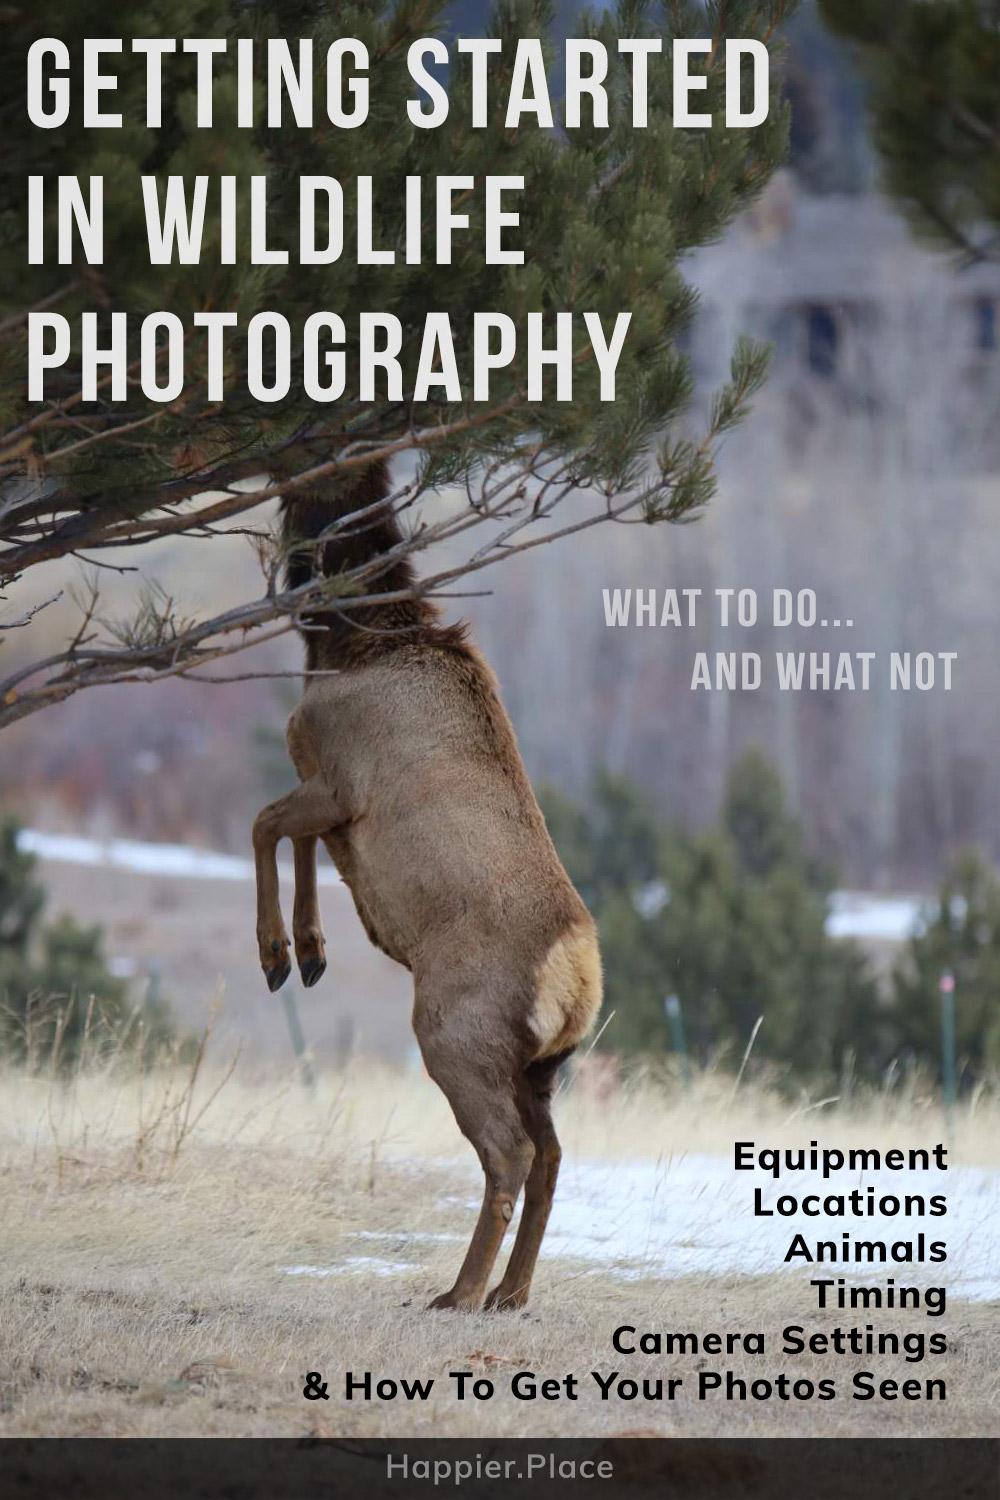 Ultimate Guide to getting started in wildlife photography: , equipment, locations, animals, timing, camera settings, insider tips and how to get your photography seen by Mike East for Happier Place.